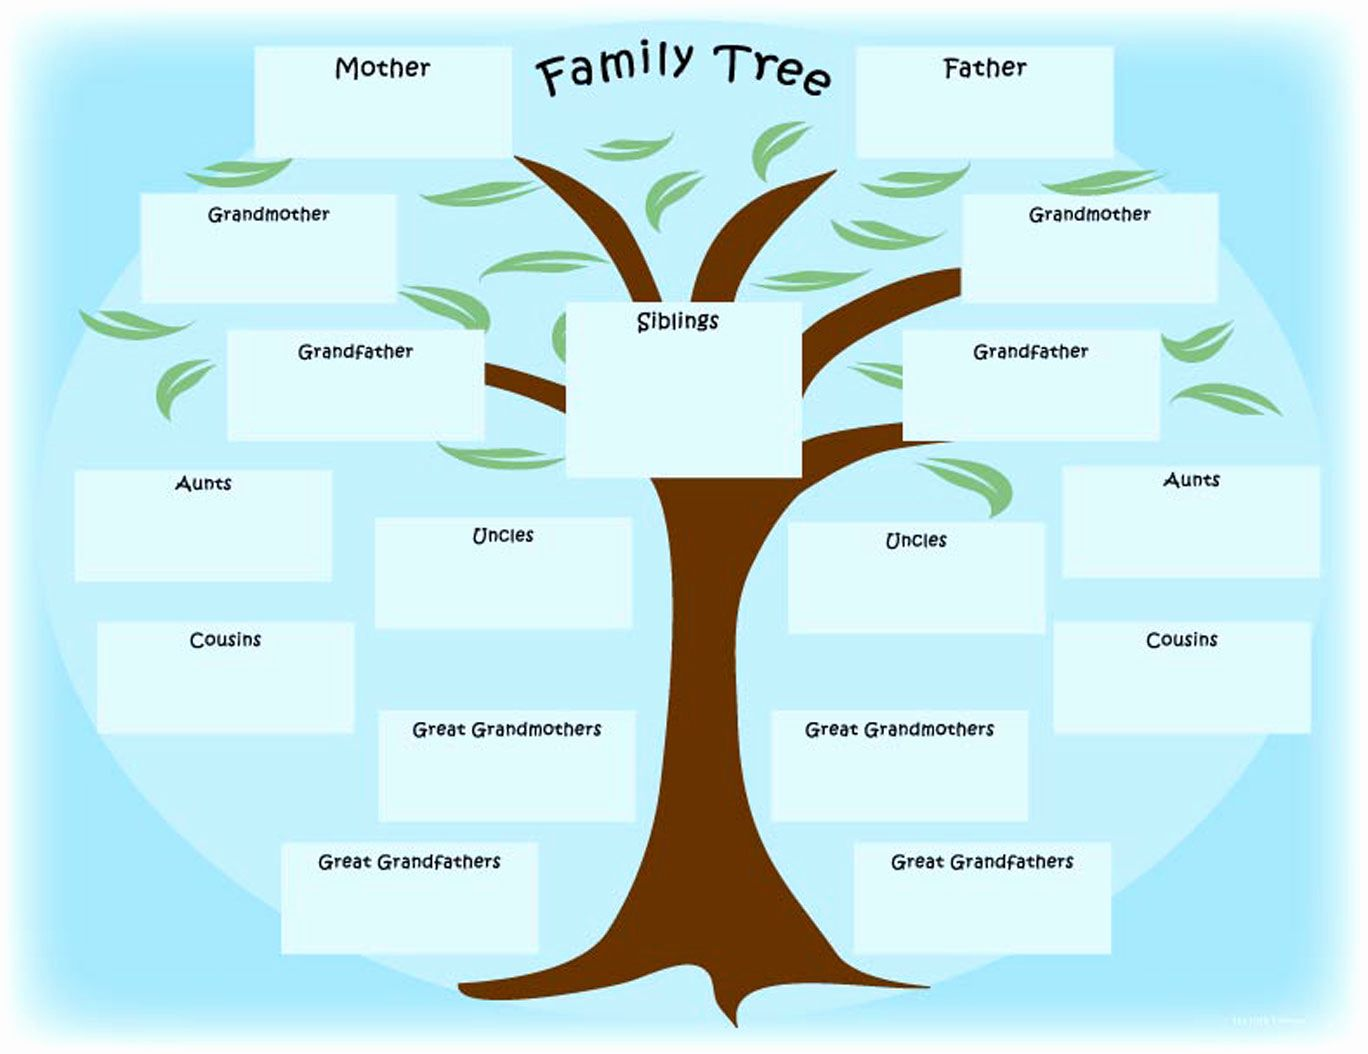 Free Printable Family Tree Awesome Greek Mythology Greek God Family Tree Mythological Maps Family Tree Printable Blank Family Tree Free Family Tree Template Family tree powerpoint template free download